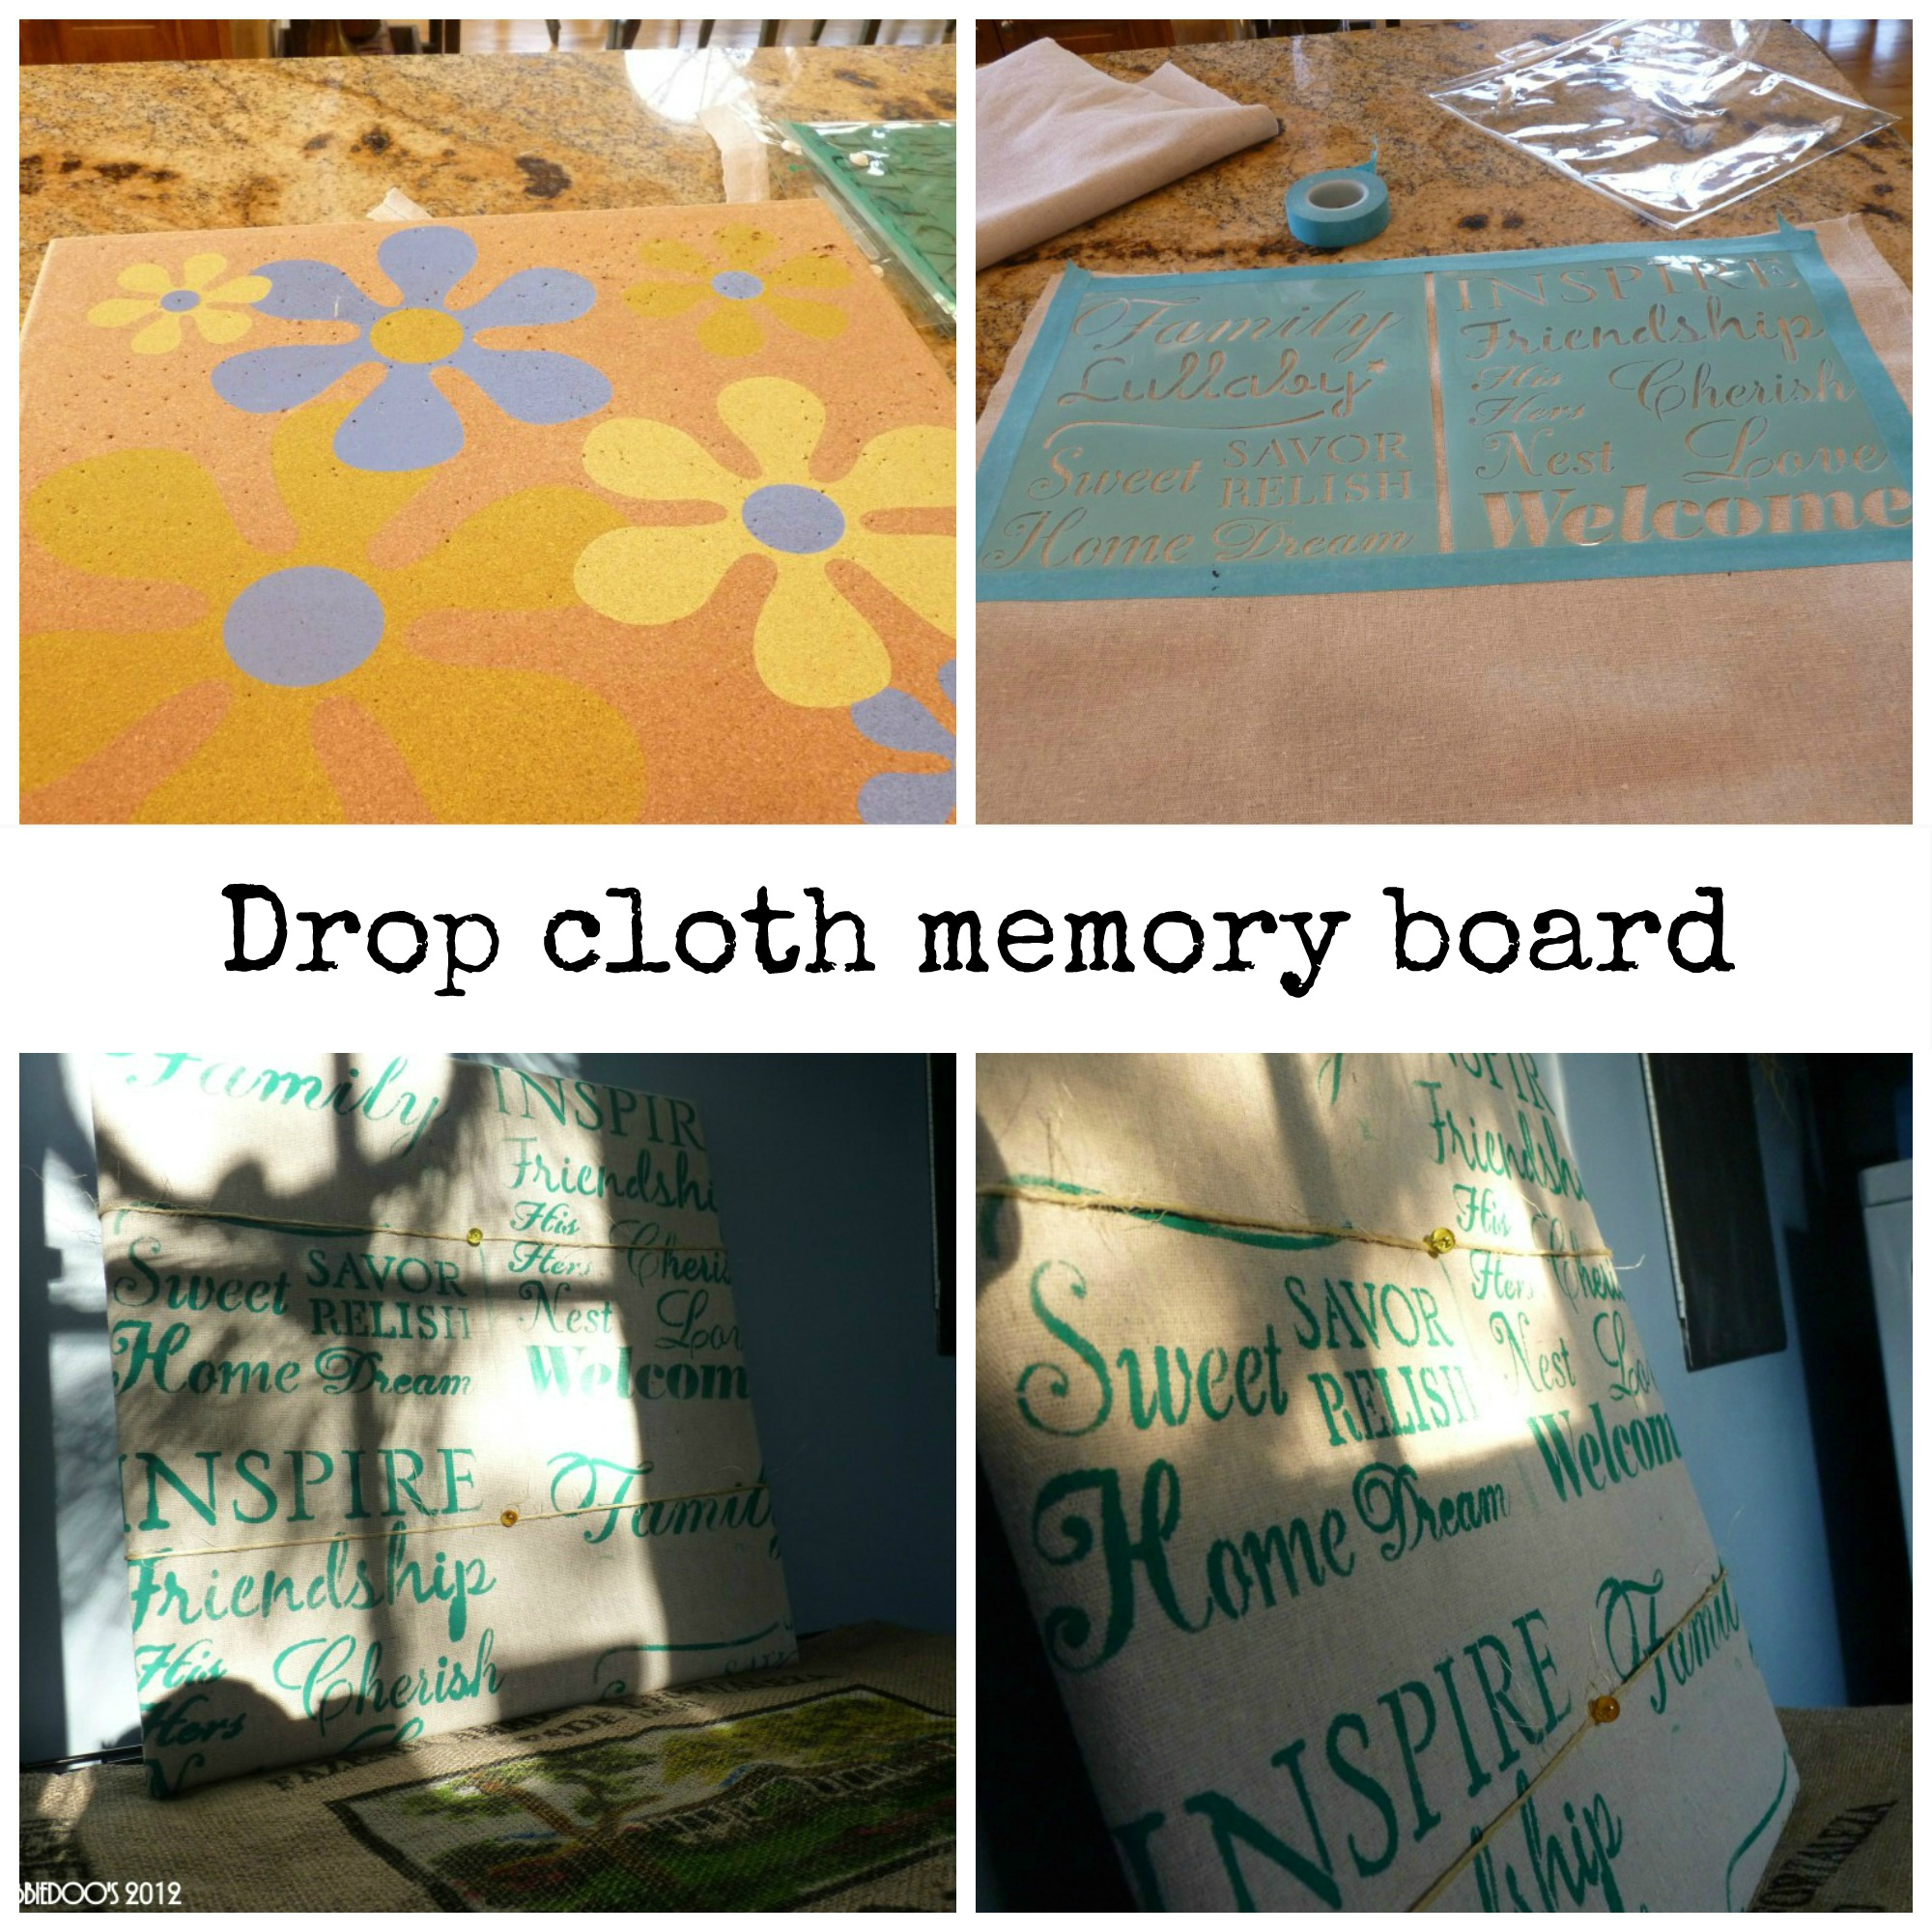 diy-memory-board-from-drop-clothes Diy projects out of drop cloths